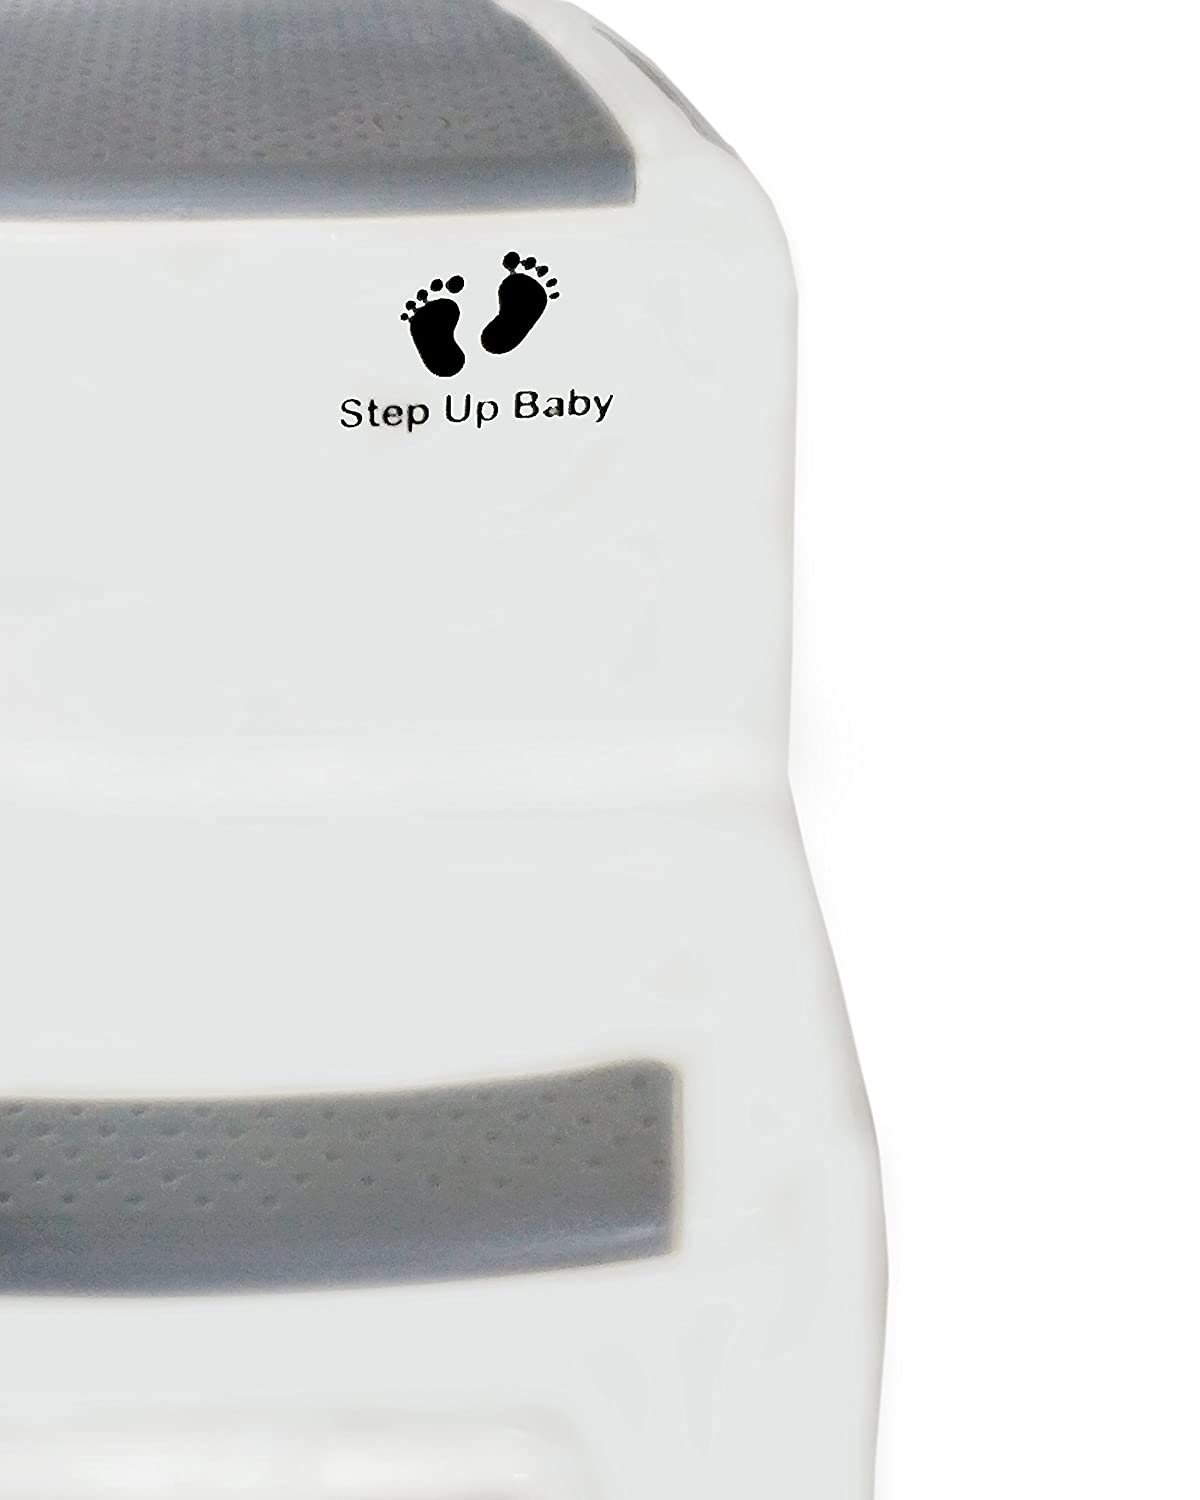 Potty Training Two-Level Stepping Stool For Kids Multipurpose Two-Step Stool With Anti-Slip Pads Sturdy Bathroom And Kitchen Step Stool Dual Height Step Stool For Toddlers By Step Up Baby